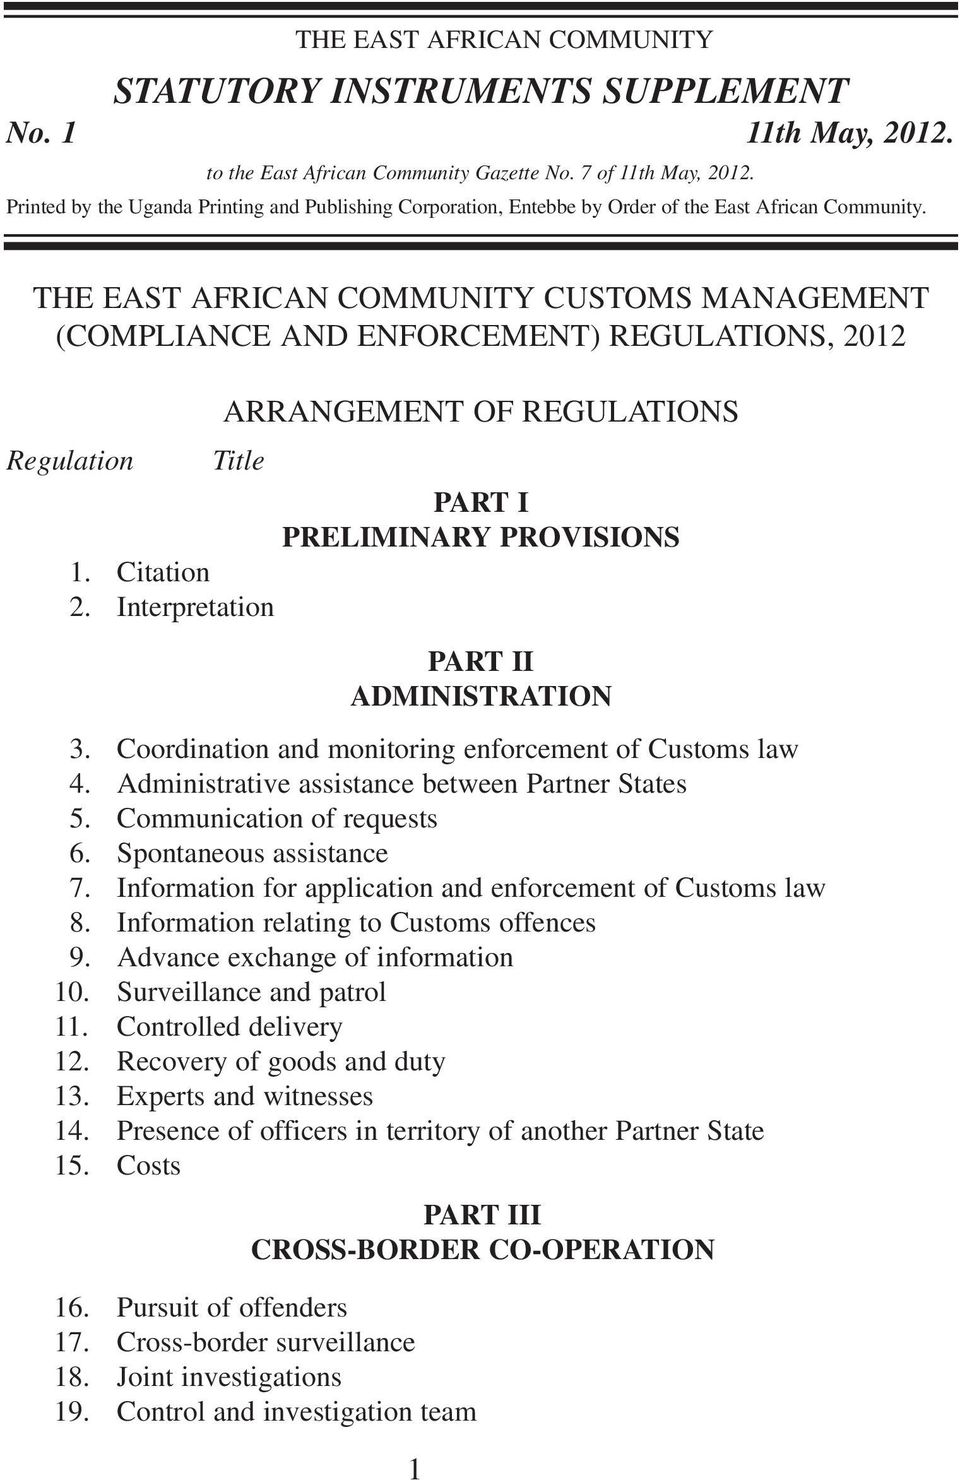 THE EAST AFRICAN COMMUNITY CUSTOMS MANAGEMENT (COMPLIANCE AND ENFORCEMENT) REGULATIONS, 2012 Regulation ARRANGEMENT OF REGULATIONS Title PART I PRELIMINARY PROVISIONS 1. Citation 2.